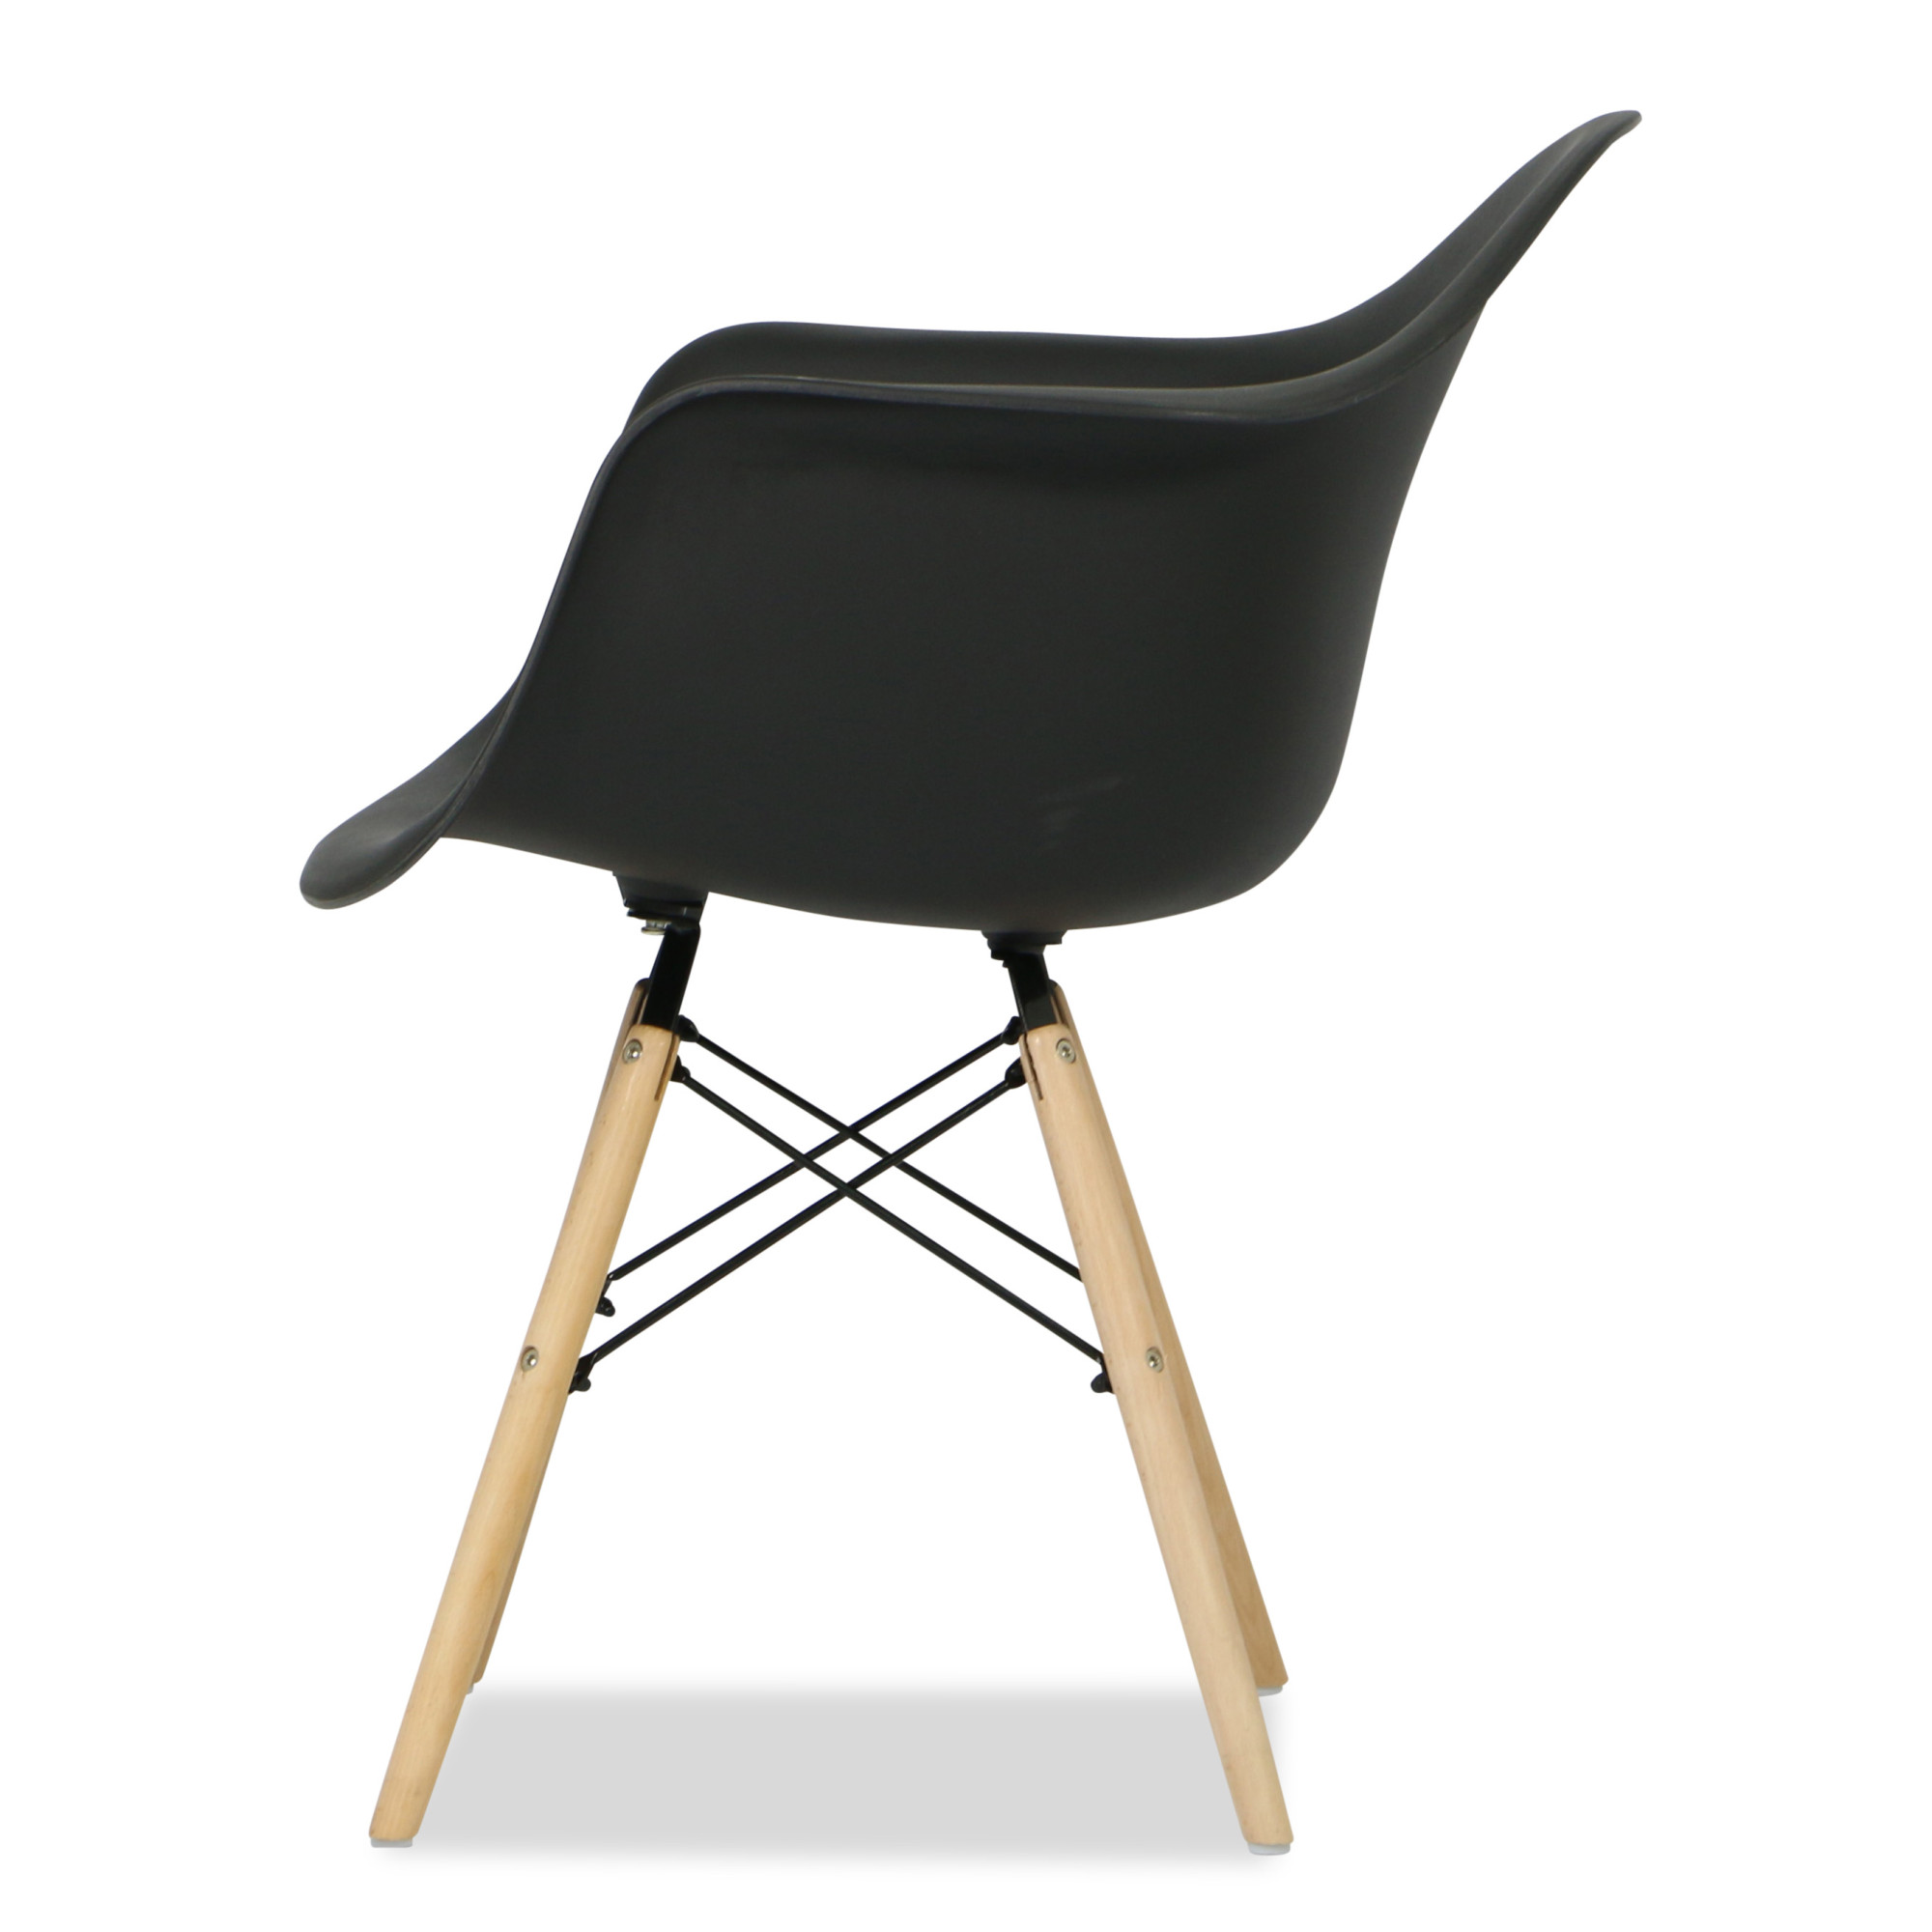 Eames replica designer arm chair black furniture for Imitation designer chairs